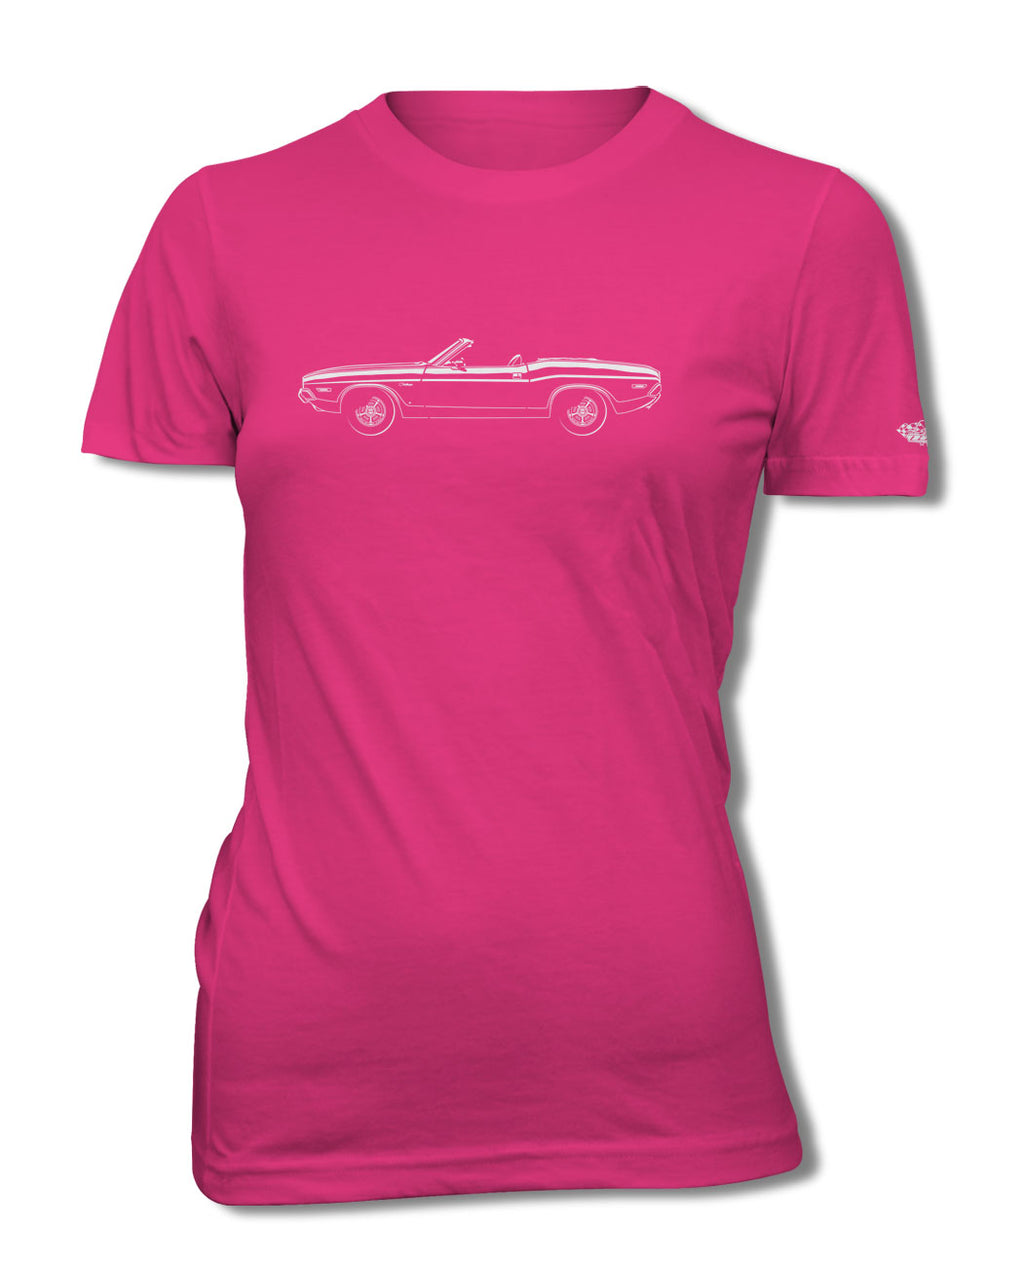 1971 Dodge Challenger Base Convertible T-Shirt - Women - Side View